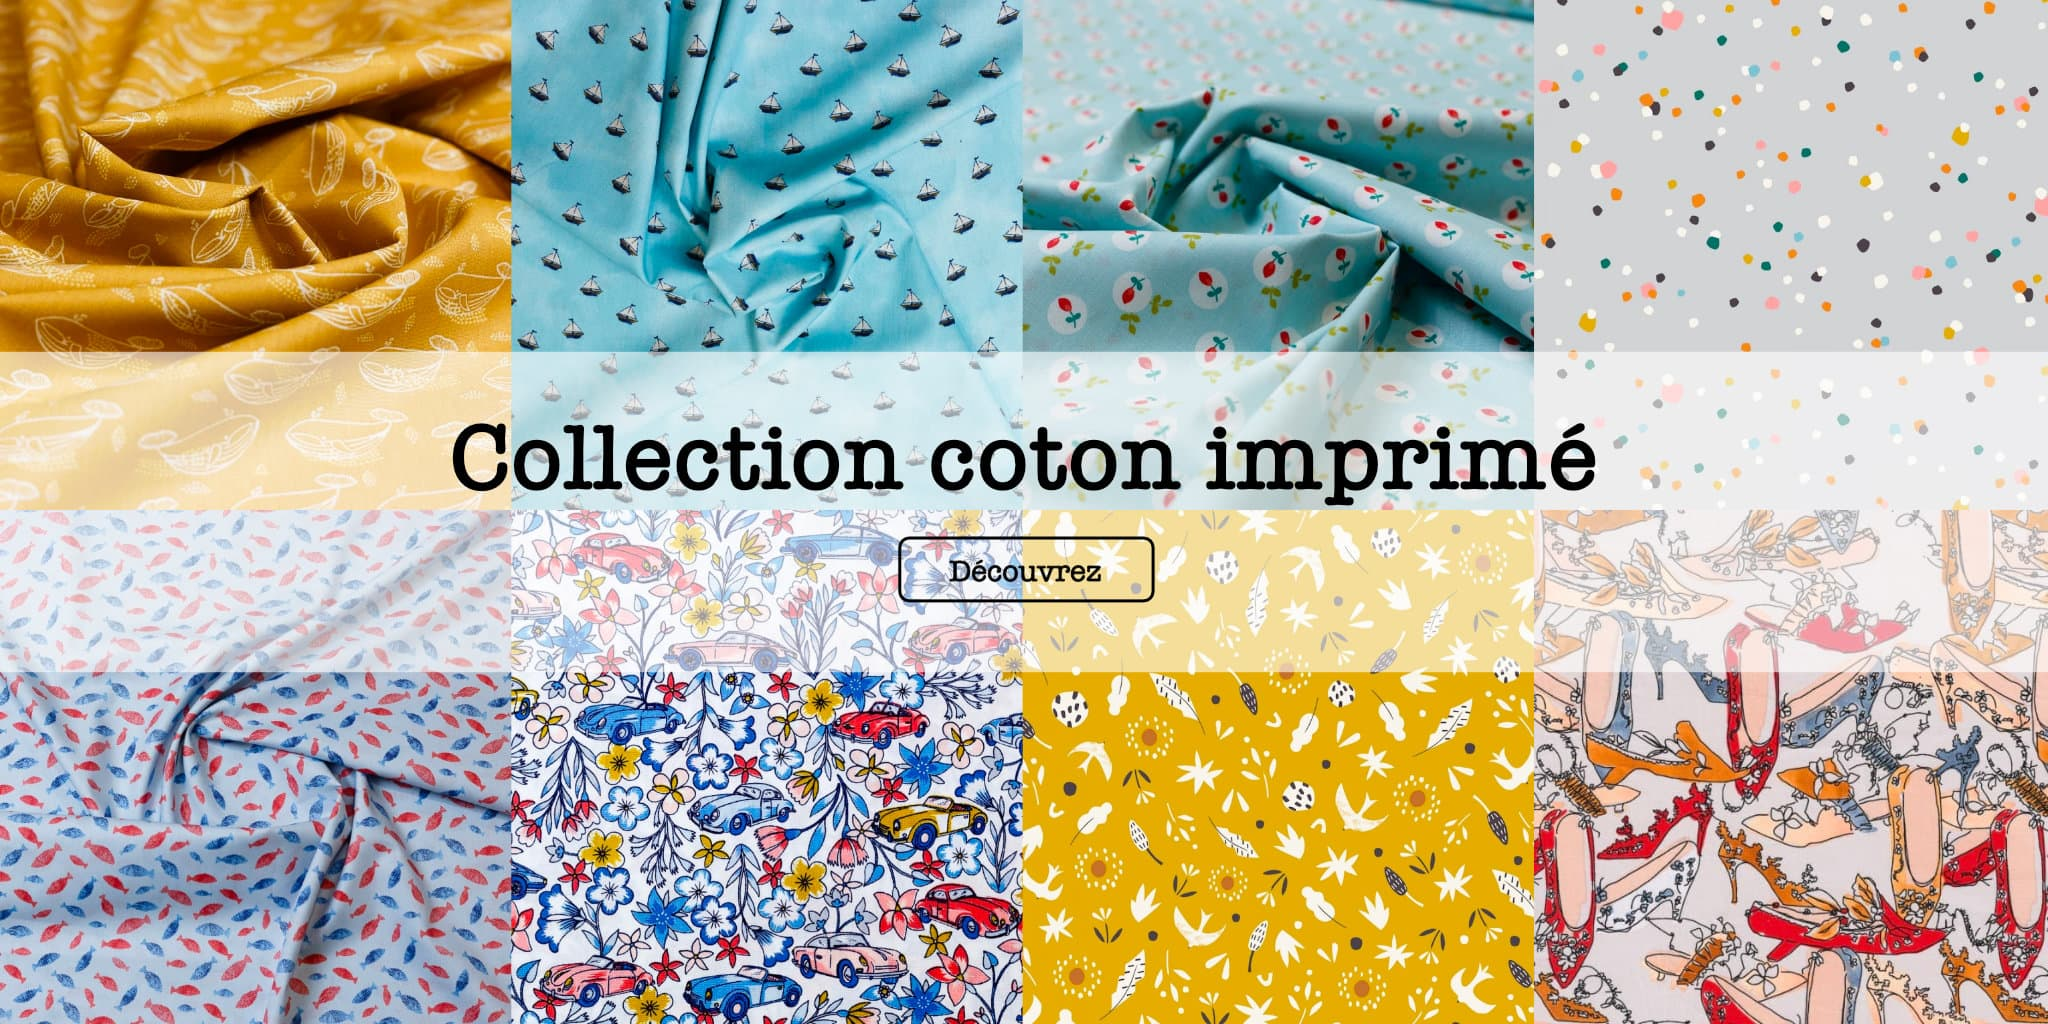 Collection Cotton Imprime @ Coup de coudre